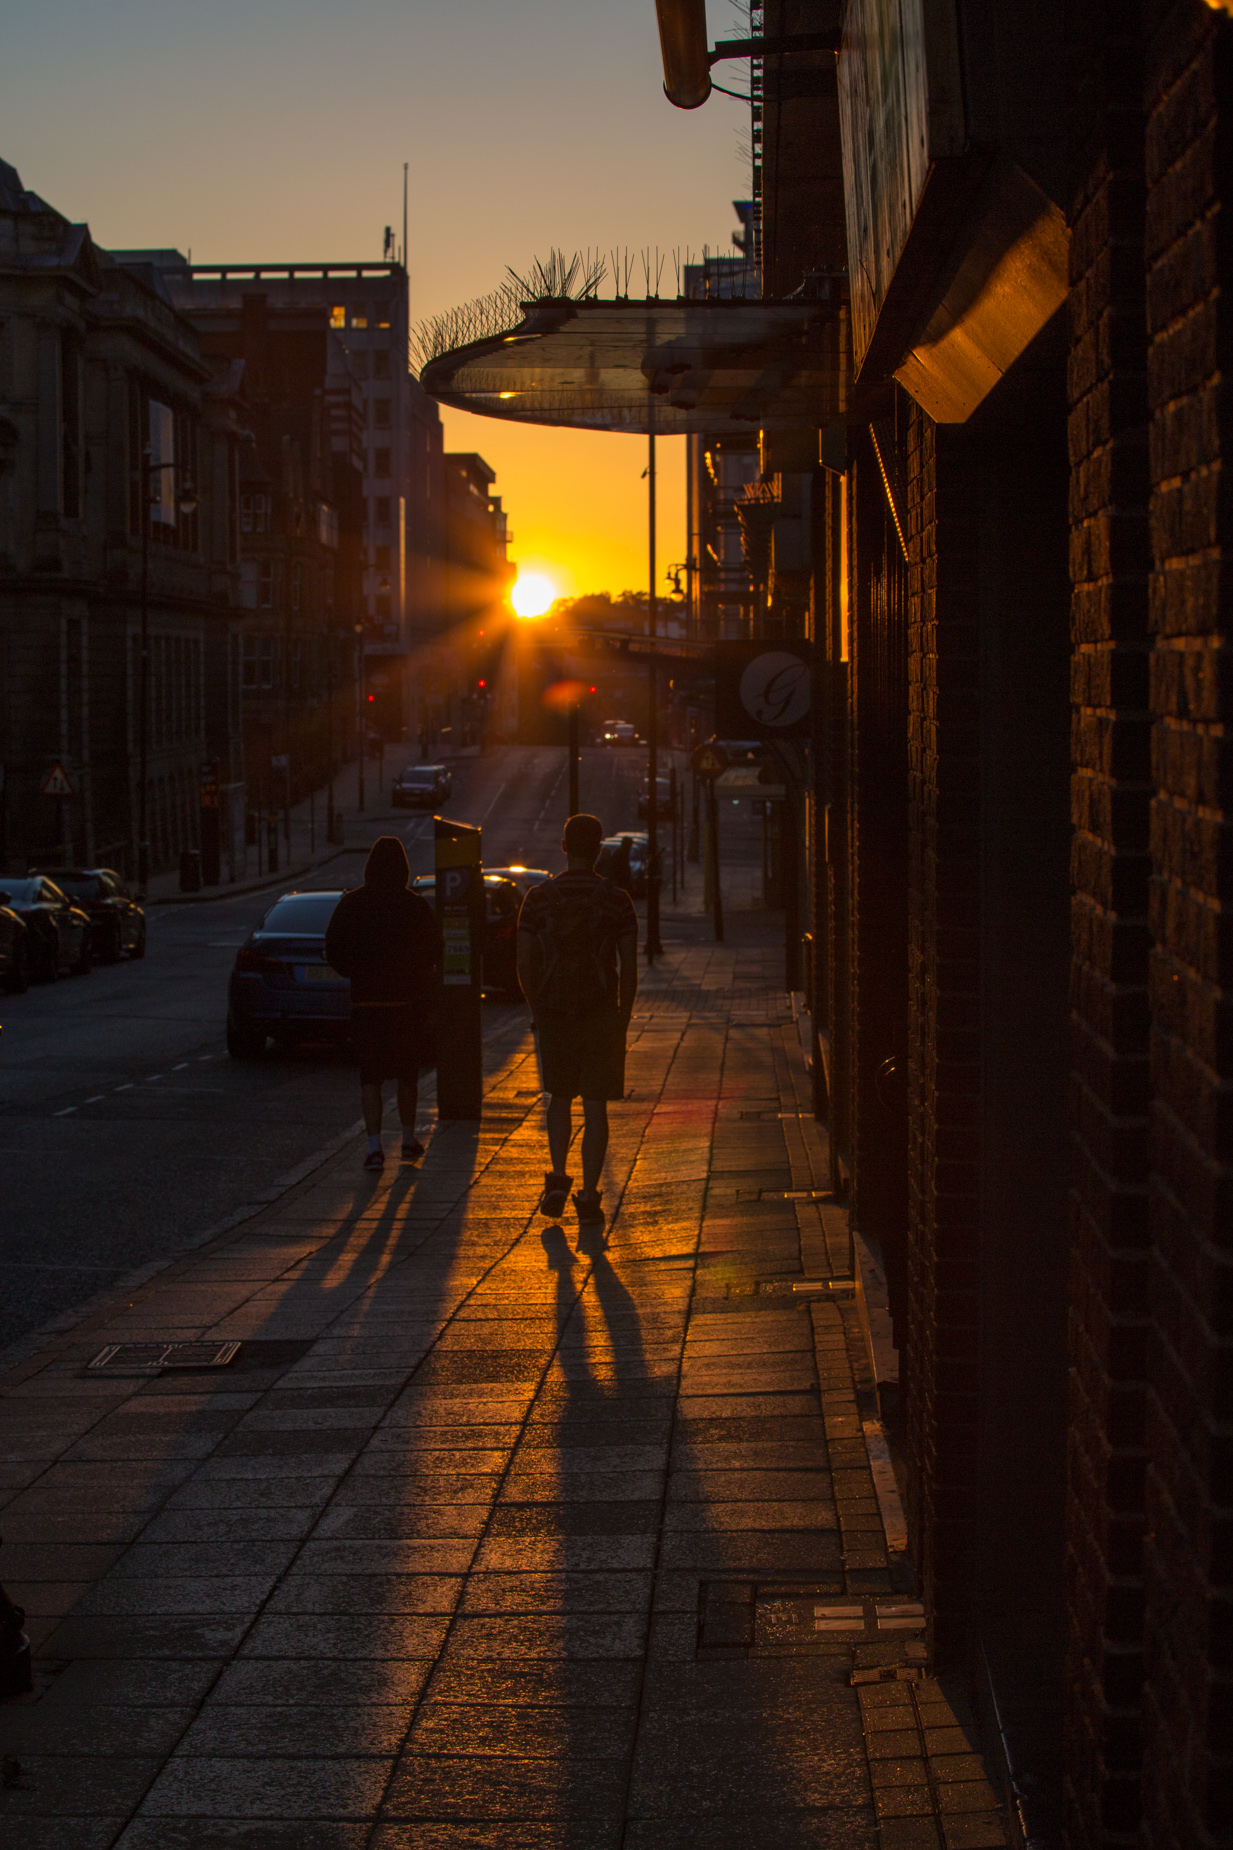 Sun almost in positionat the end of Newhall Street 7th June 2015